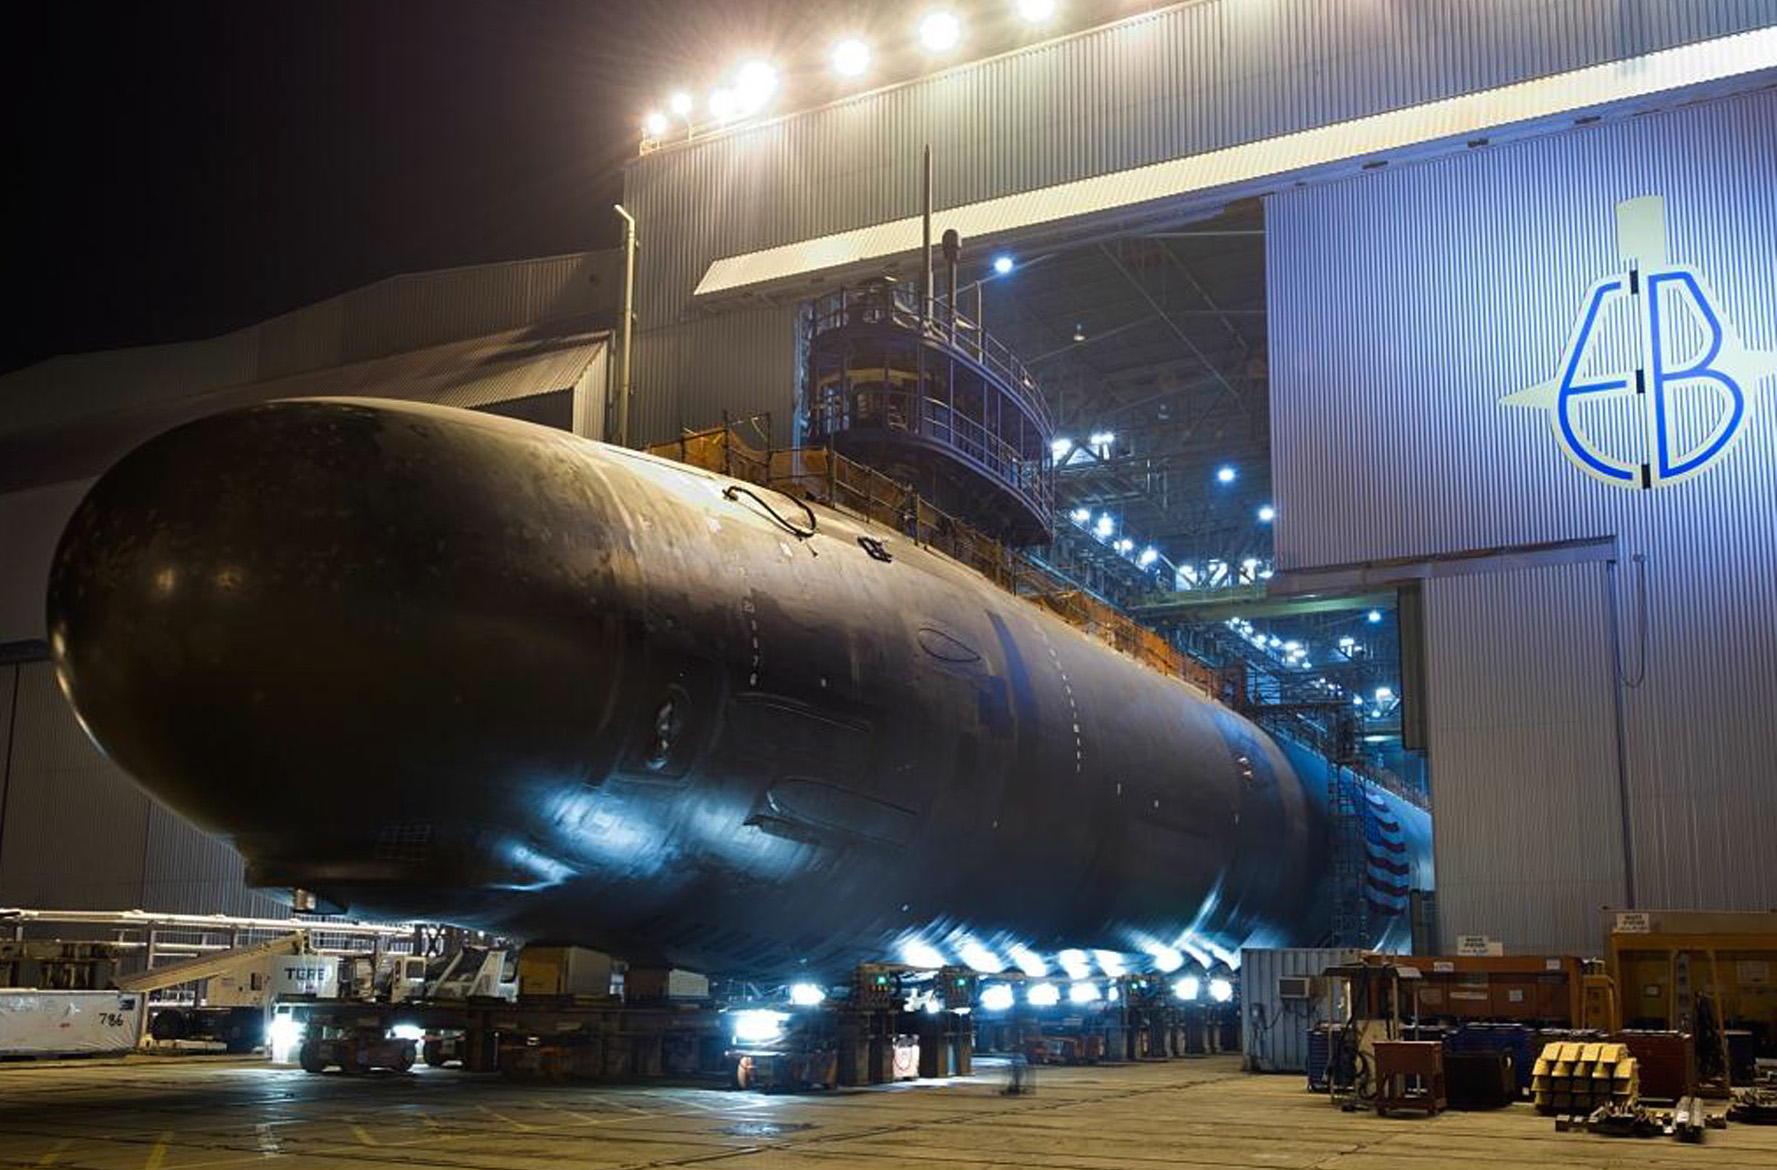 Virginia-class attack submarine Pre-Commissioning Unit (PCU) North Dakota (SSN-784) at General Dynamics Electric Boat in Groton, Conn. on Sept. 11, 2013. US Navy Photo